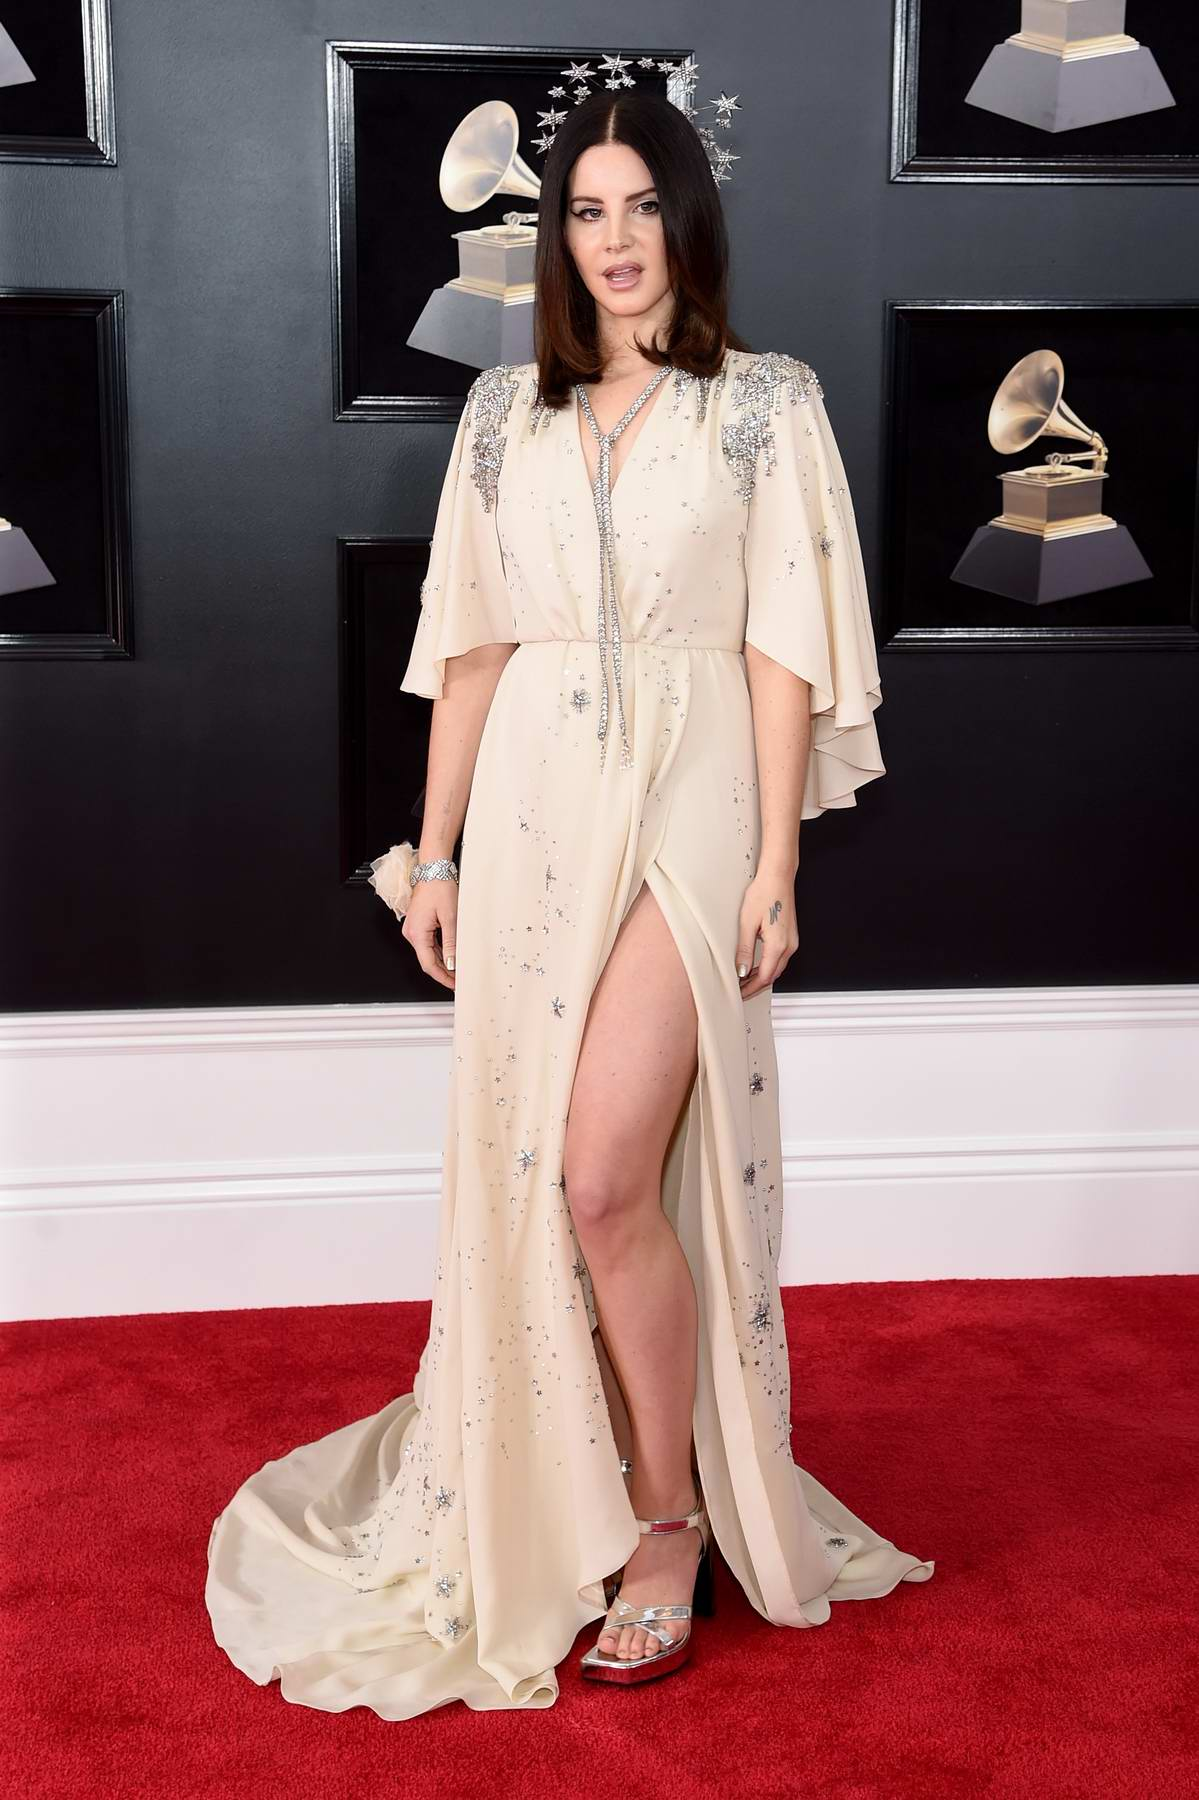 Lana Del Rey attends the 60th Annual Grammy Awards at Madison Square Garden in New York